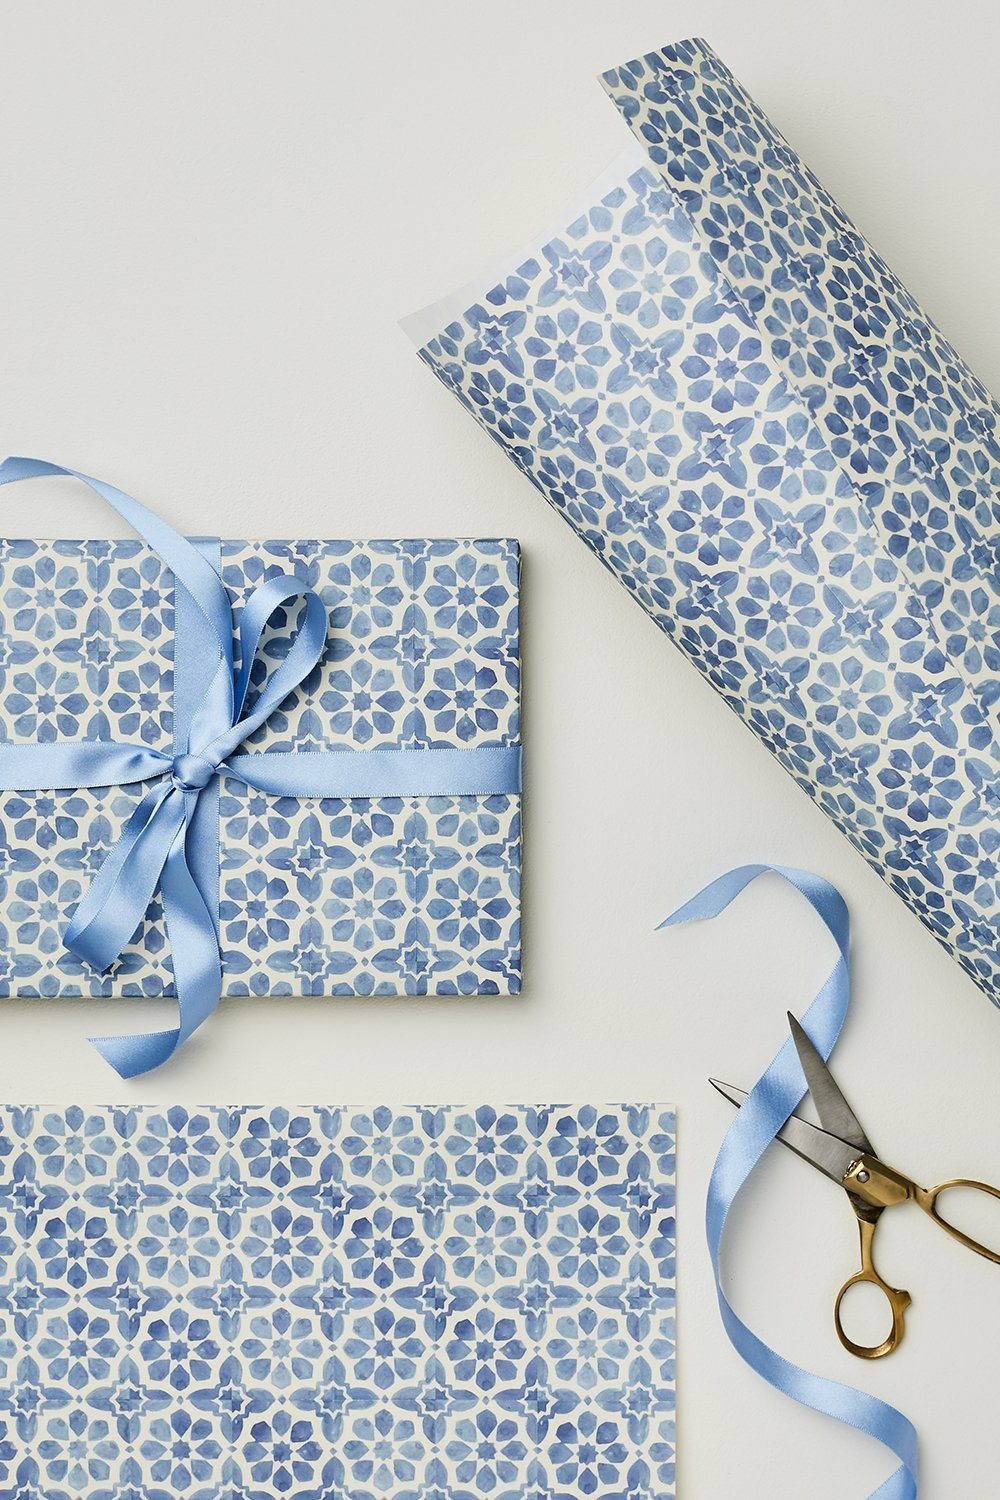 Wanderlust Paper - Gift Wrap Gifts & Stationery Wanderlust Paper Blue Tiles